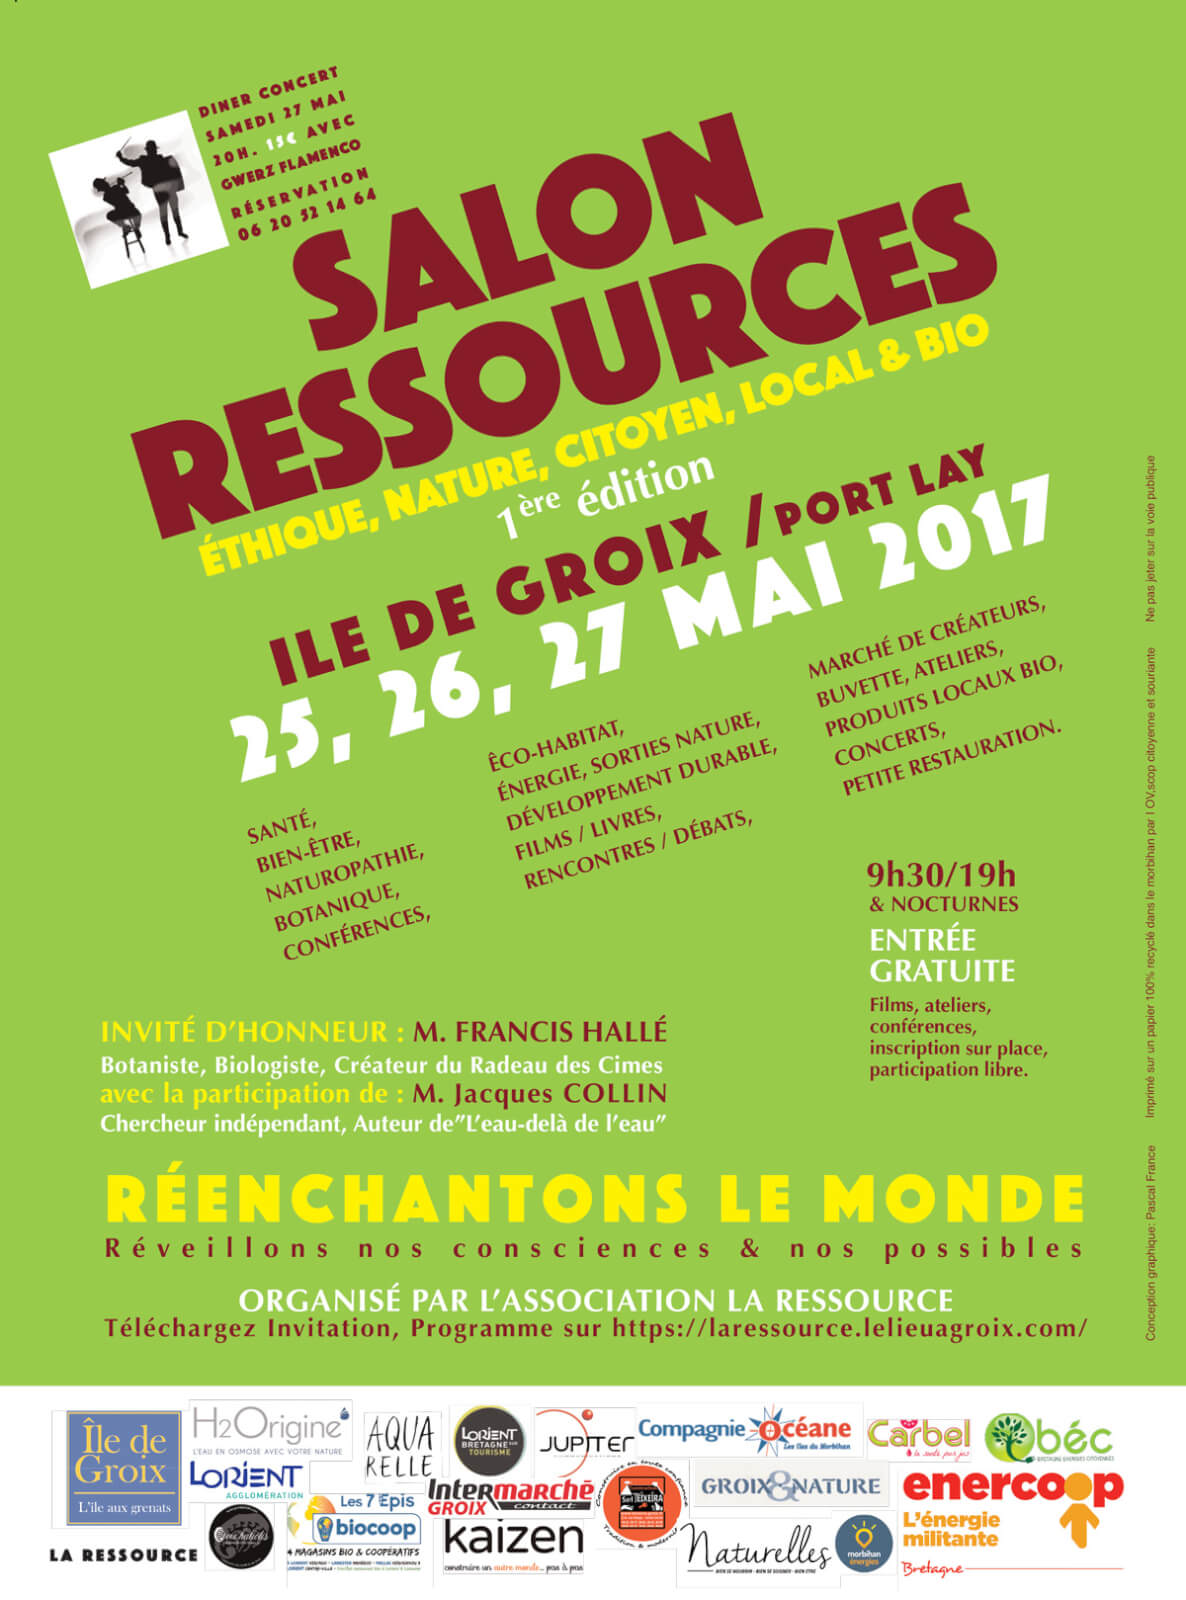 Affiche Salon Ressources 2017 à Groix